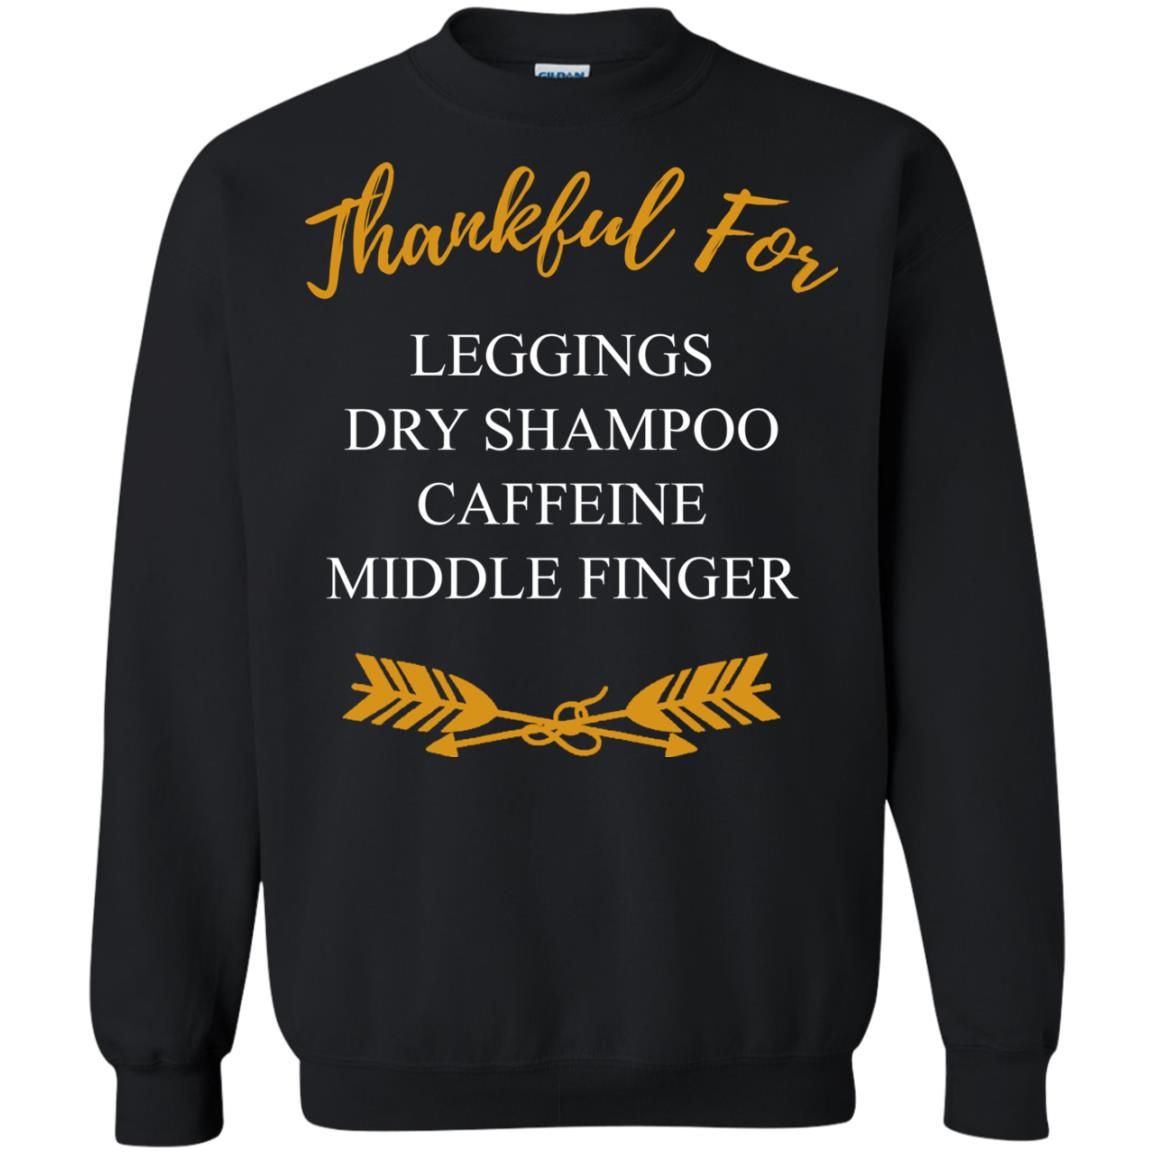 image 665 - Thankful for Leggings Dry shampoo Caffeine Middle finger sweater